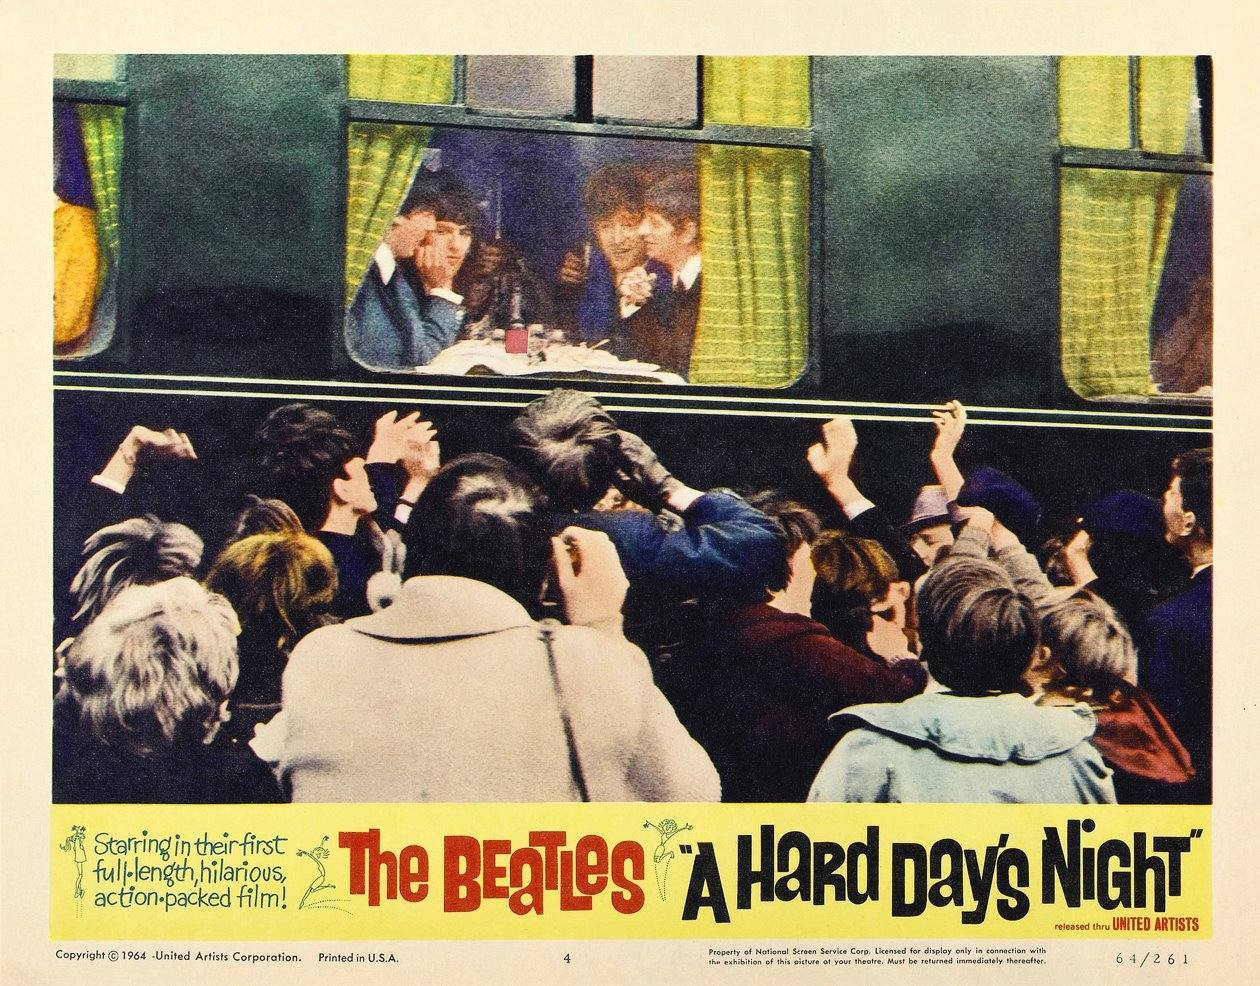 hard-days-night-set-02-04